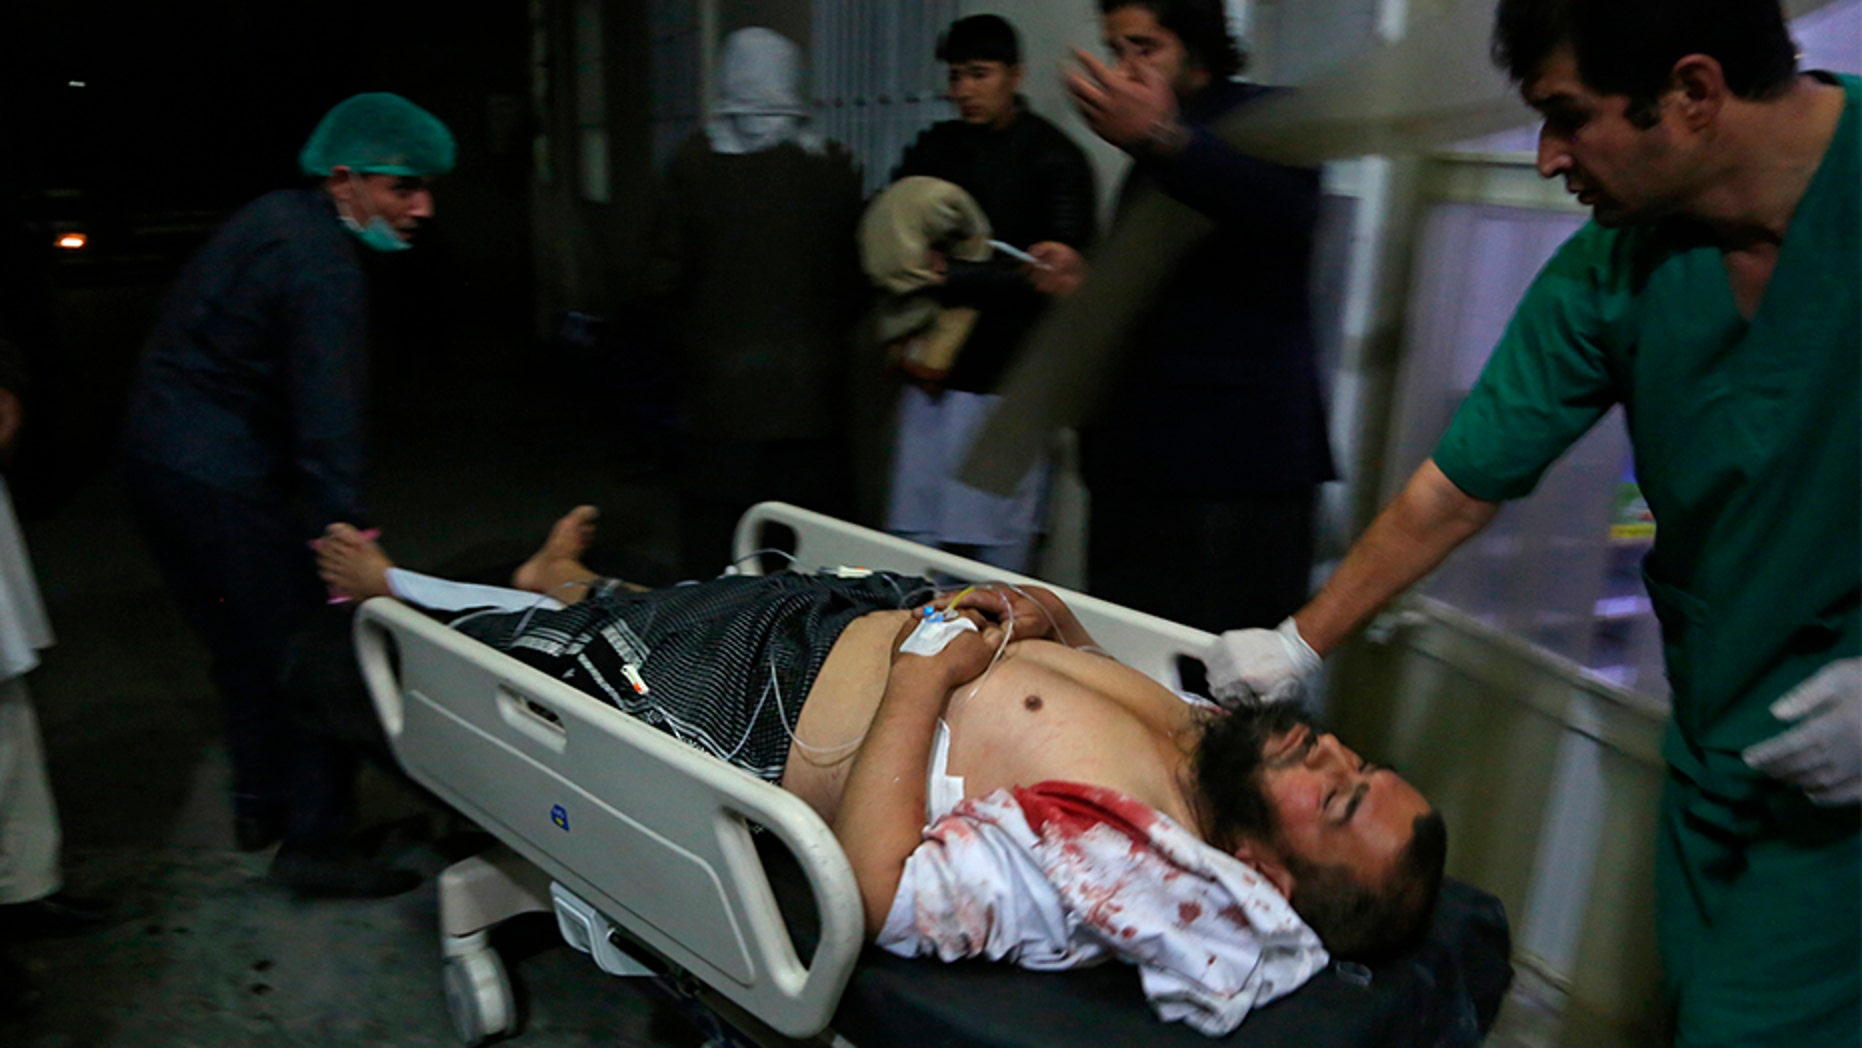 A man injured in a suicide bombing Monday is brought into a hospital in Kabul, Afghanistan.